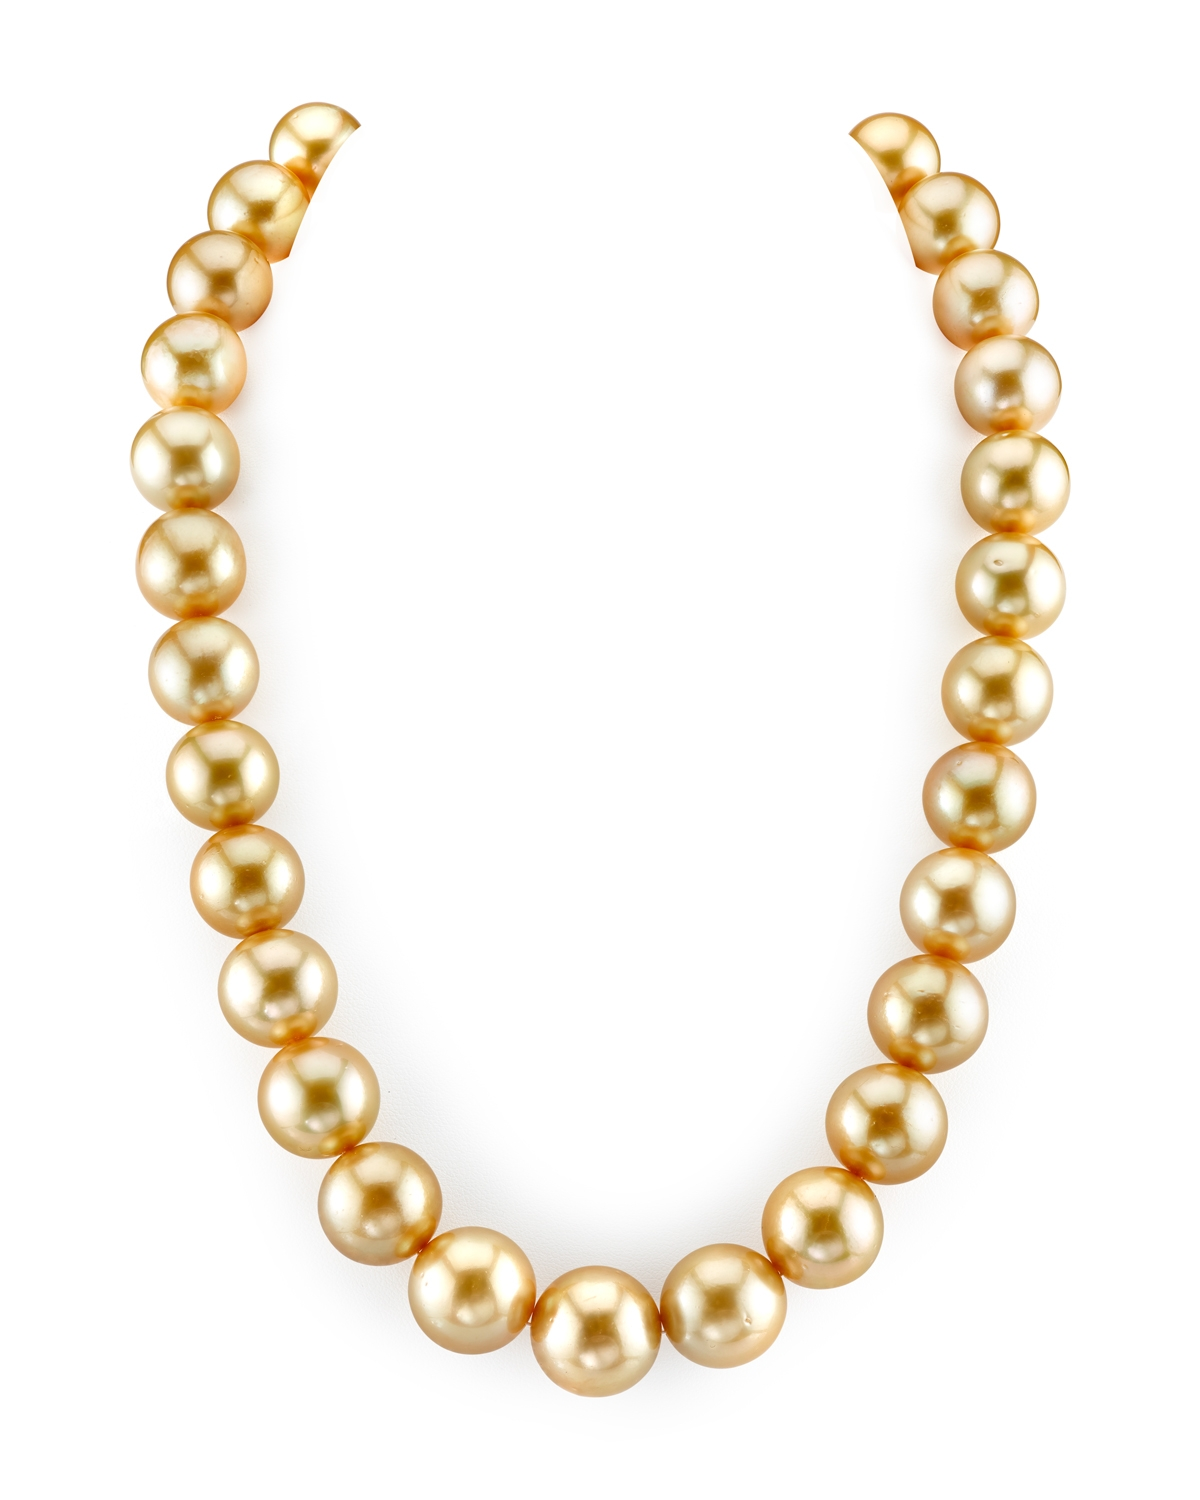 14-17mm Golden South Sea Pearl Necklace